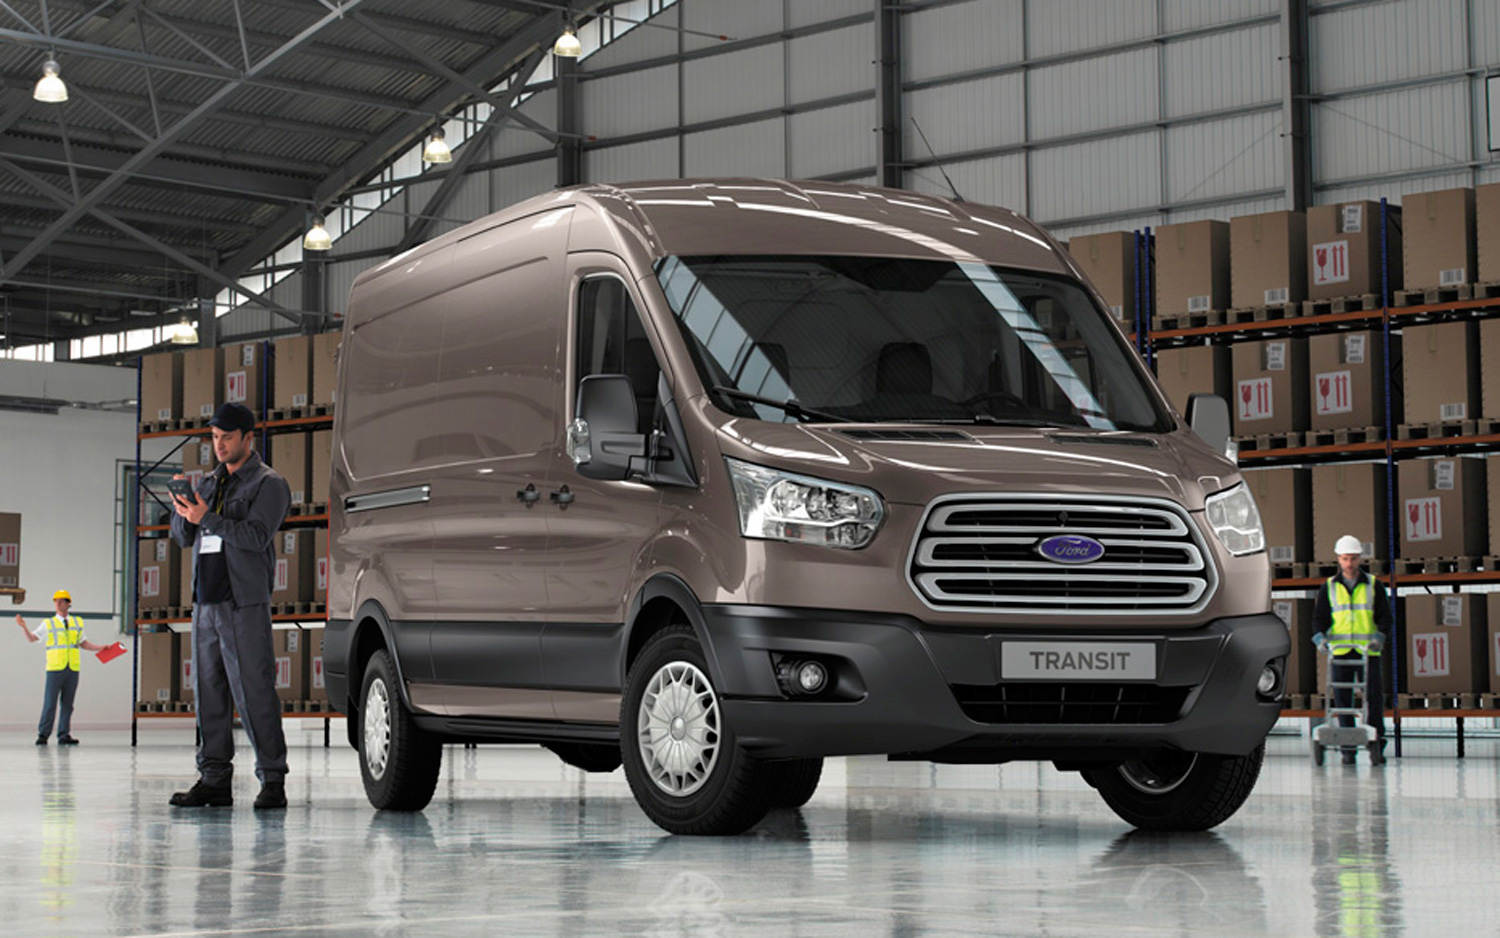 hight resolution of ford transit transit connect vans teased before u s launch